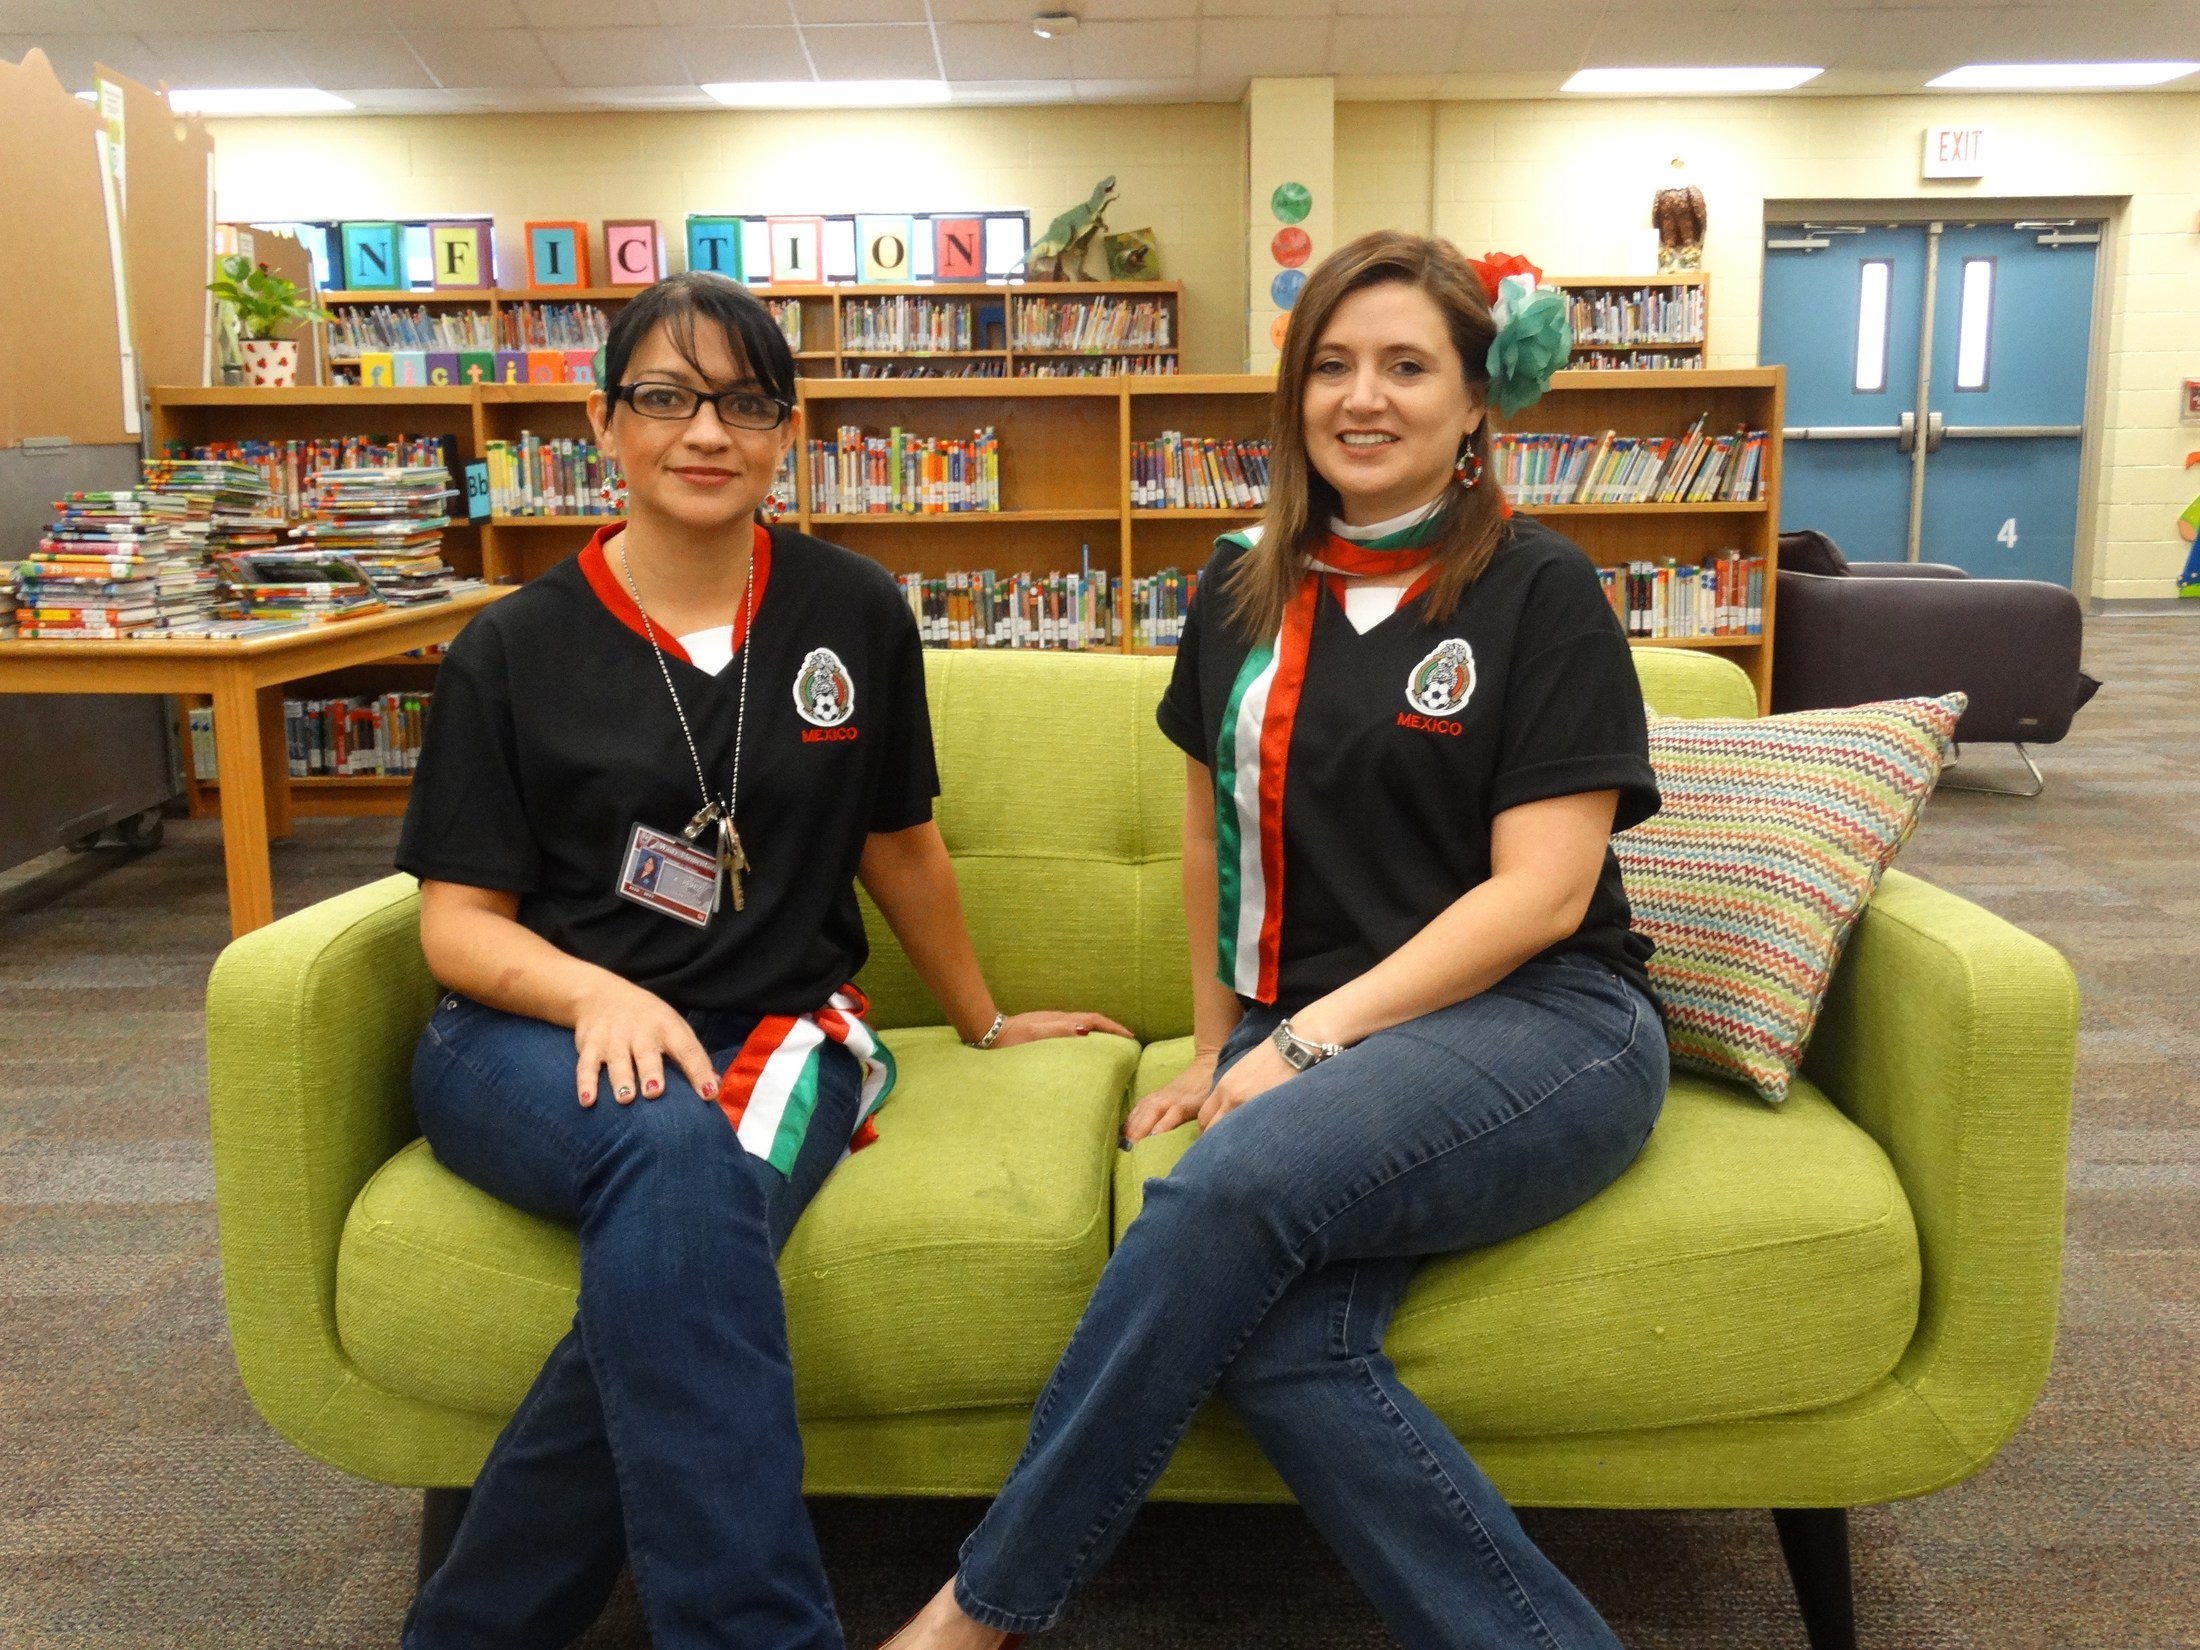 Librarian and library clerk dressed up for 16 de septiembre holiday.